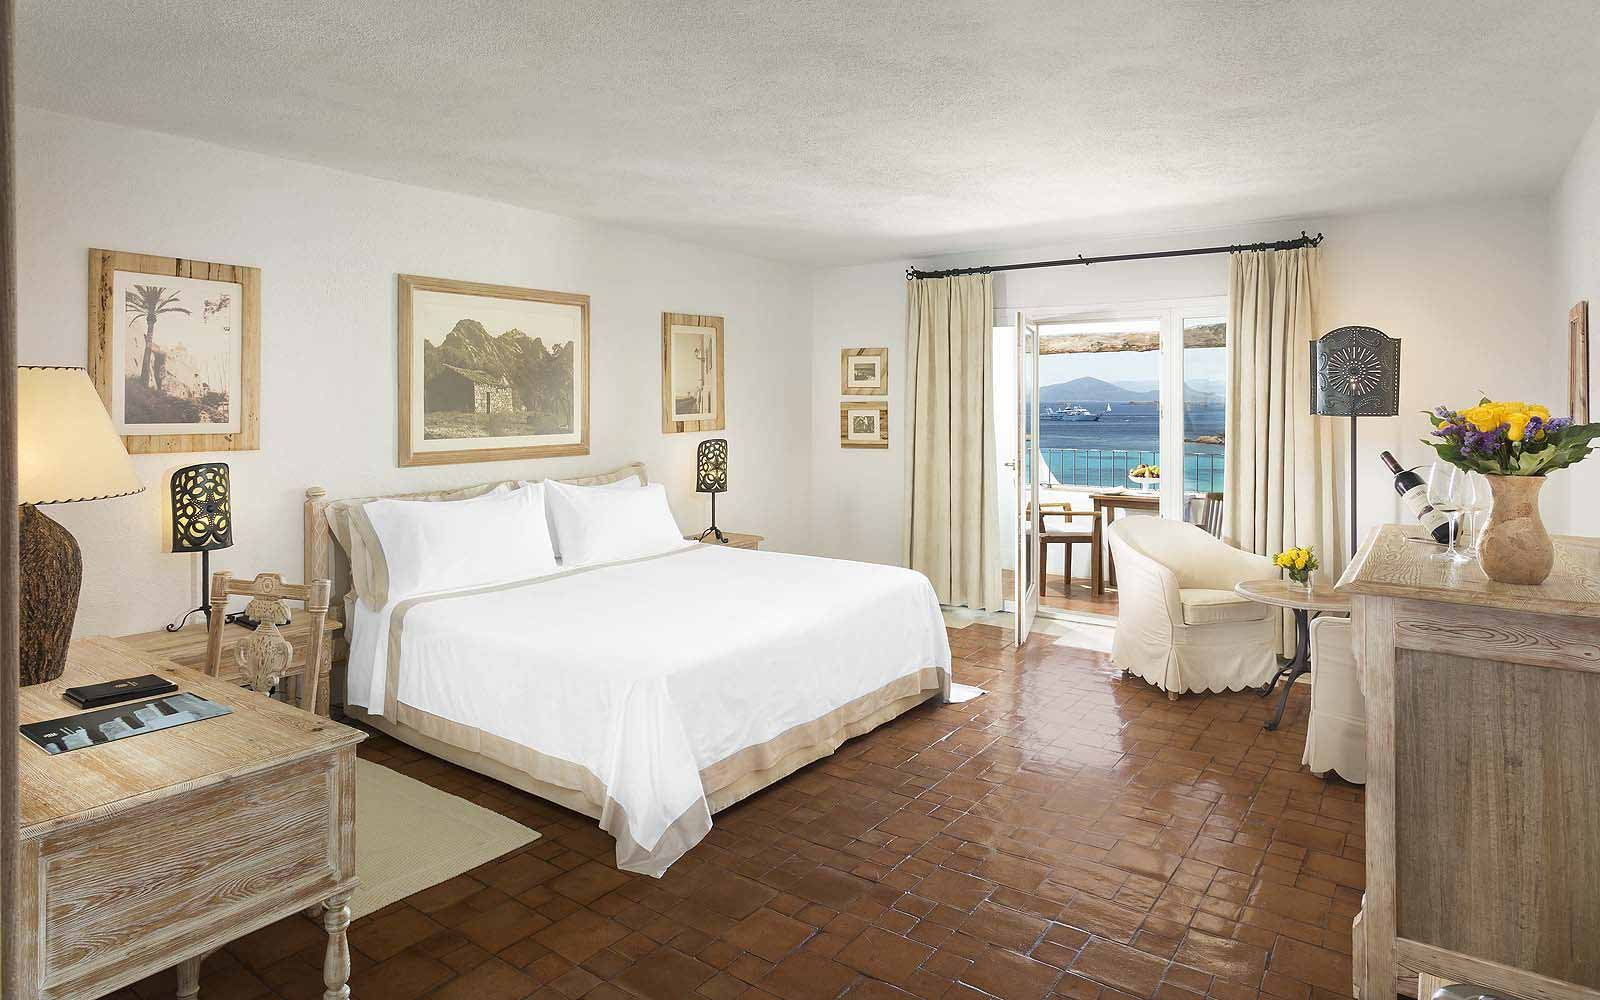 A Deluxe Suite at the Hotel Romazzino